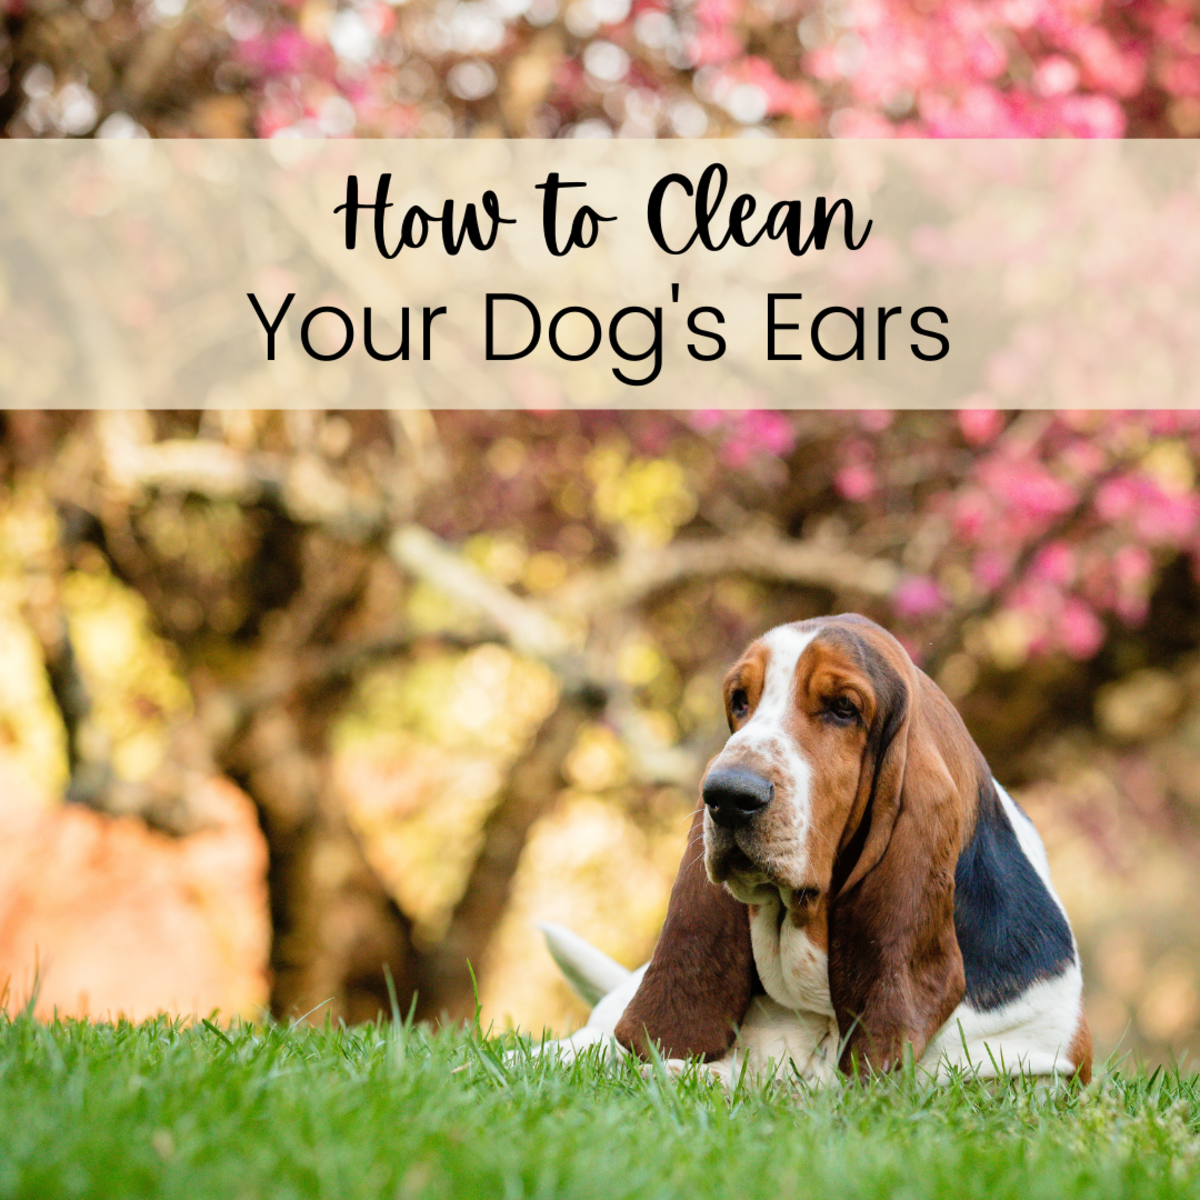 Use apple cider or white vinegar to clean your dog's ears